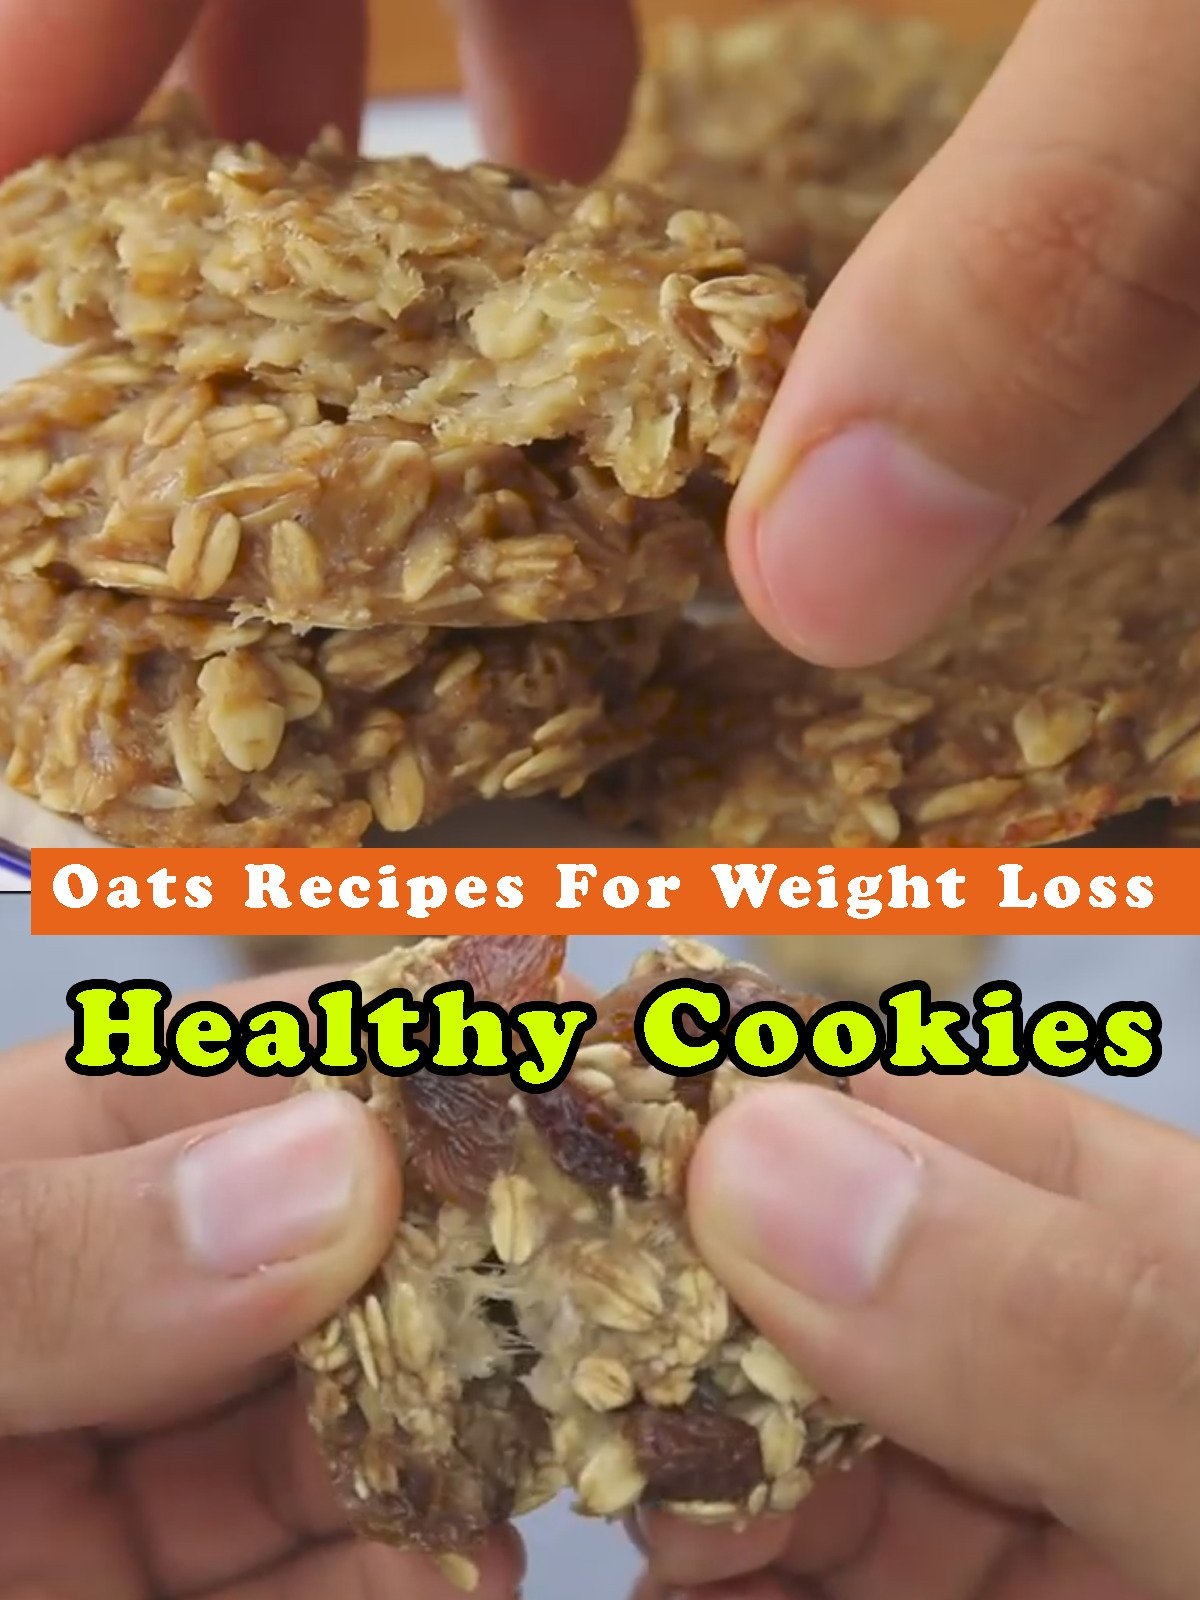 Oats Recipes For Weight Loss - Healthy Cookies